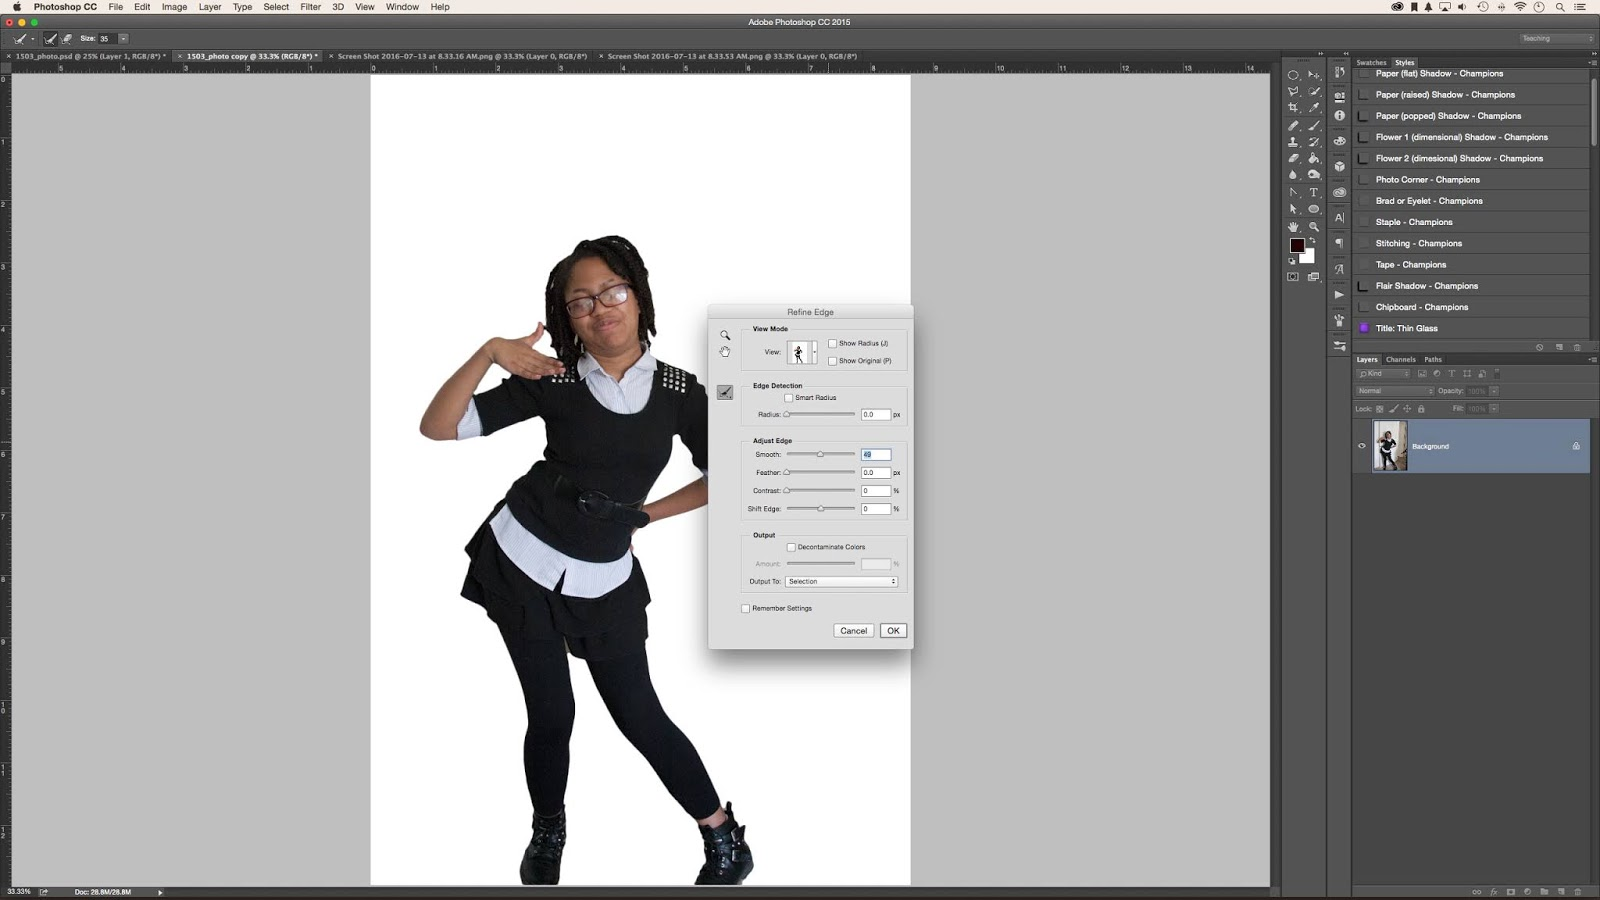 How to remove the background in photoshop cc 2018